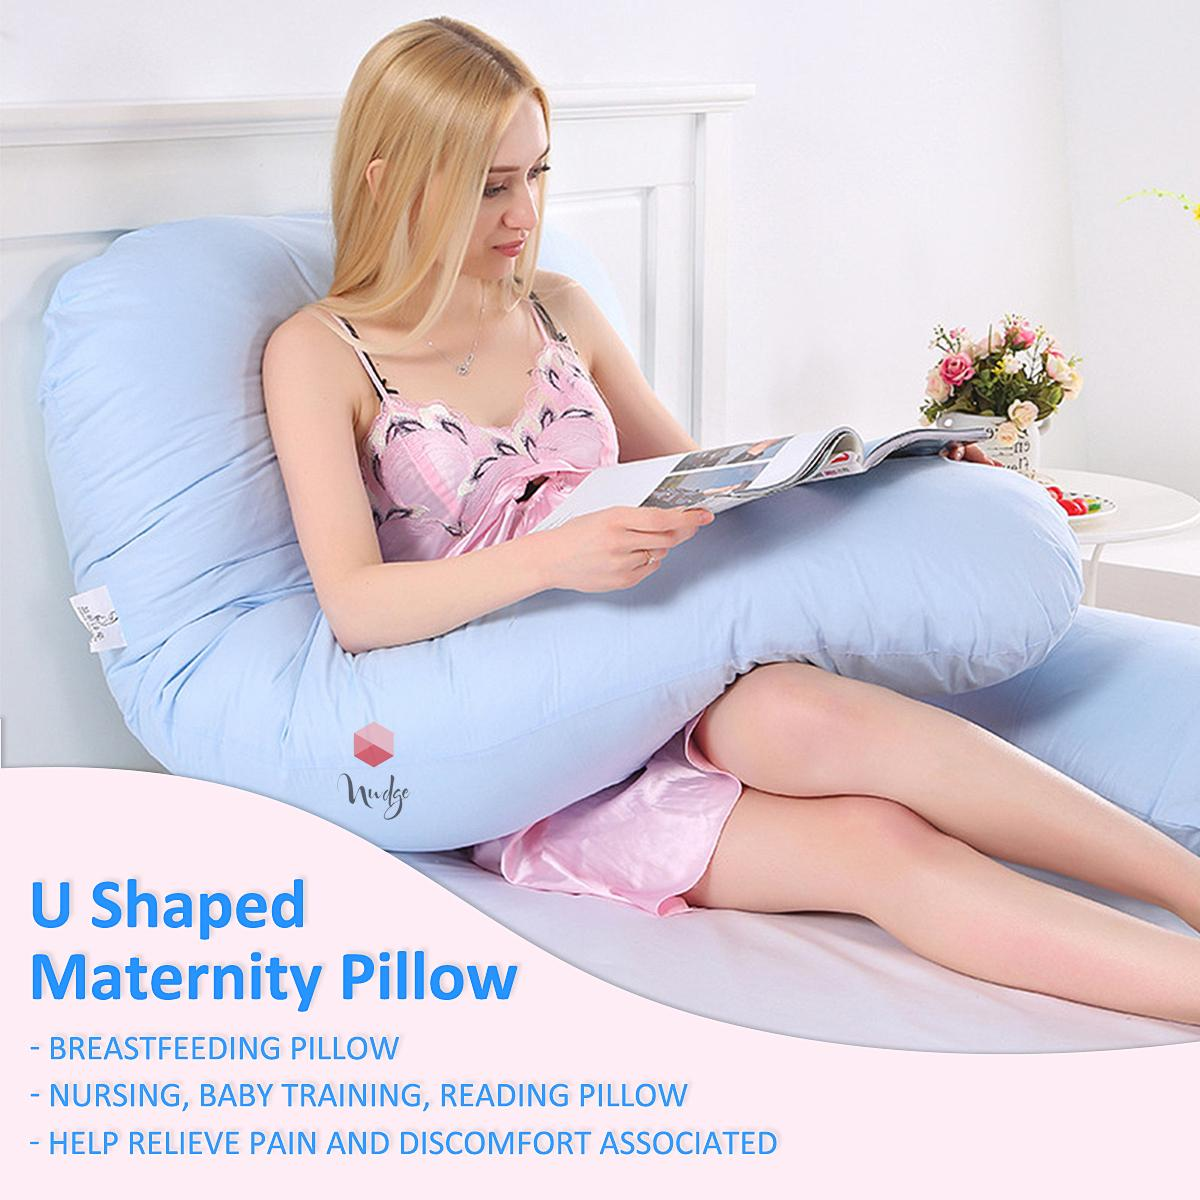 Nudge Premium Pregnancy Pillow - U Shaped Pillow With 100% Cotton Zippered Cover For Pregnant Women(Sky Blue)